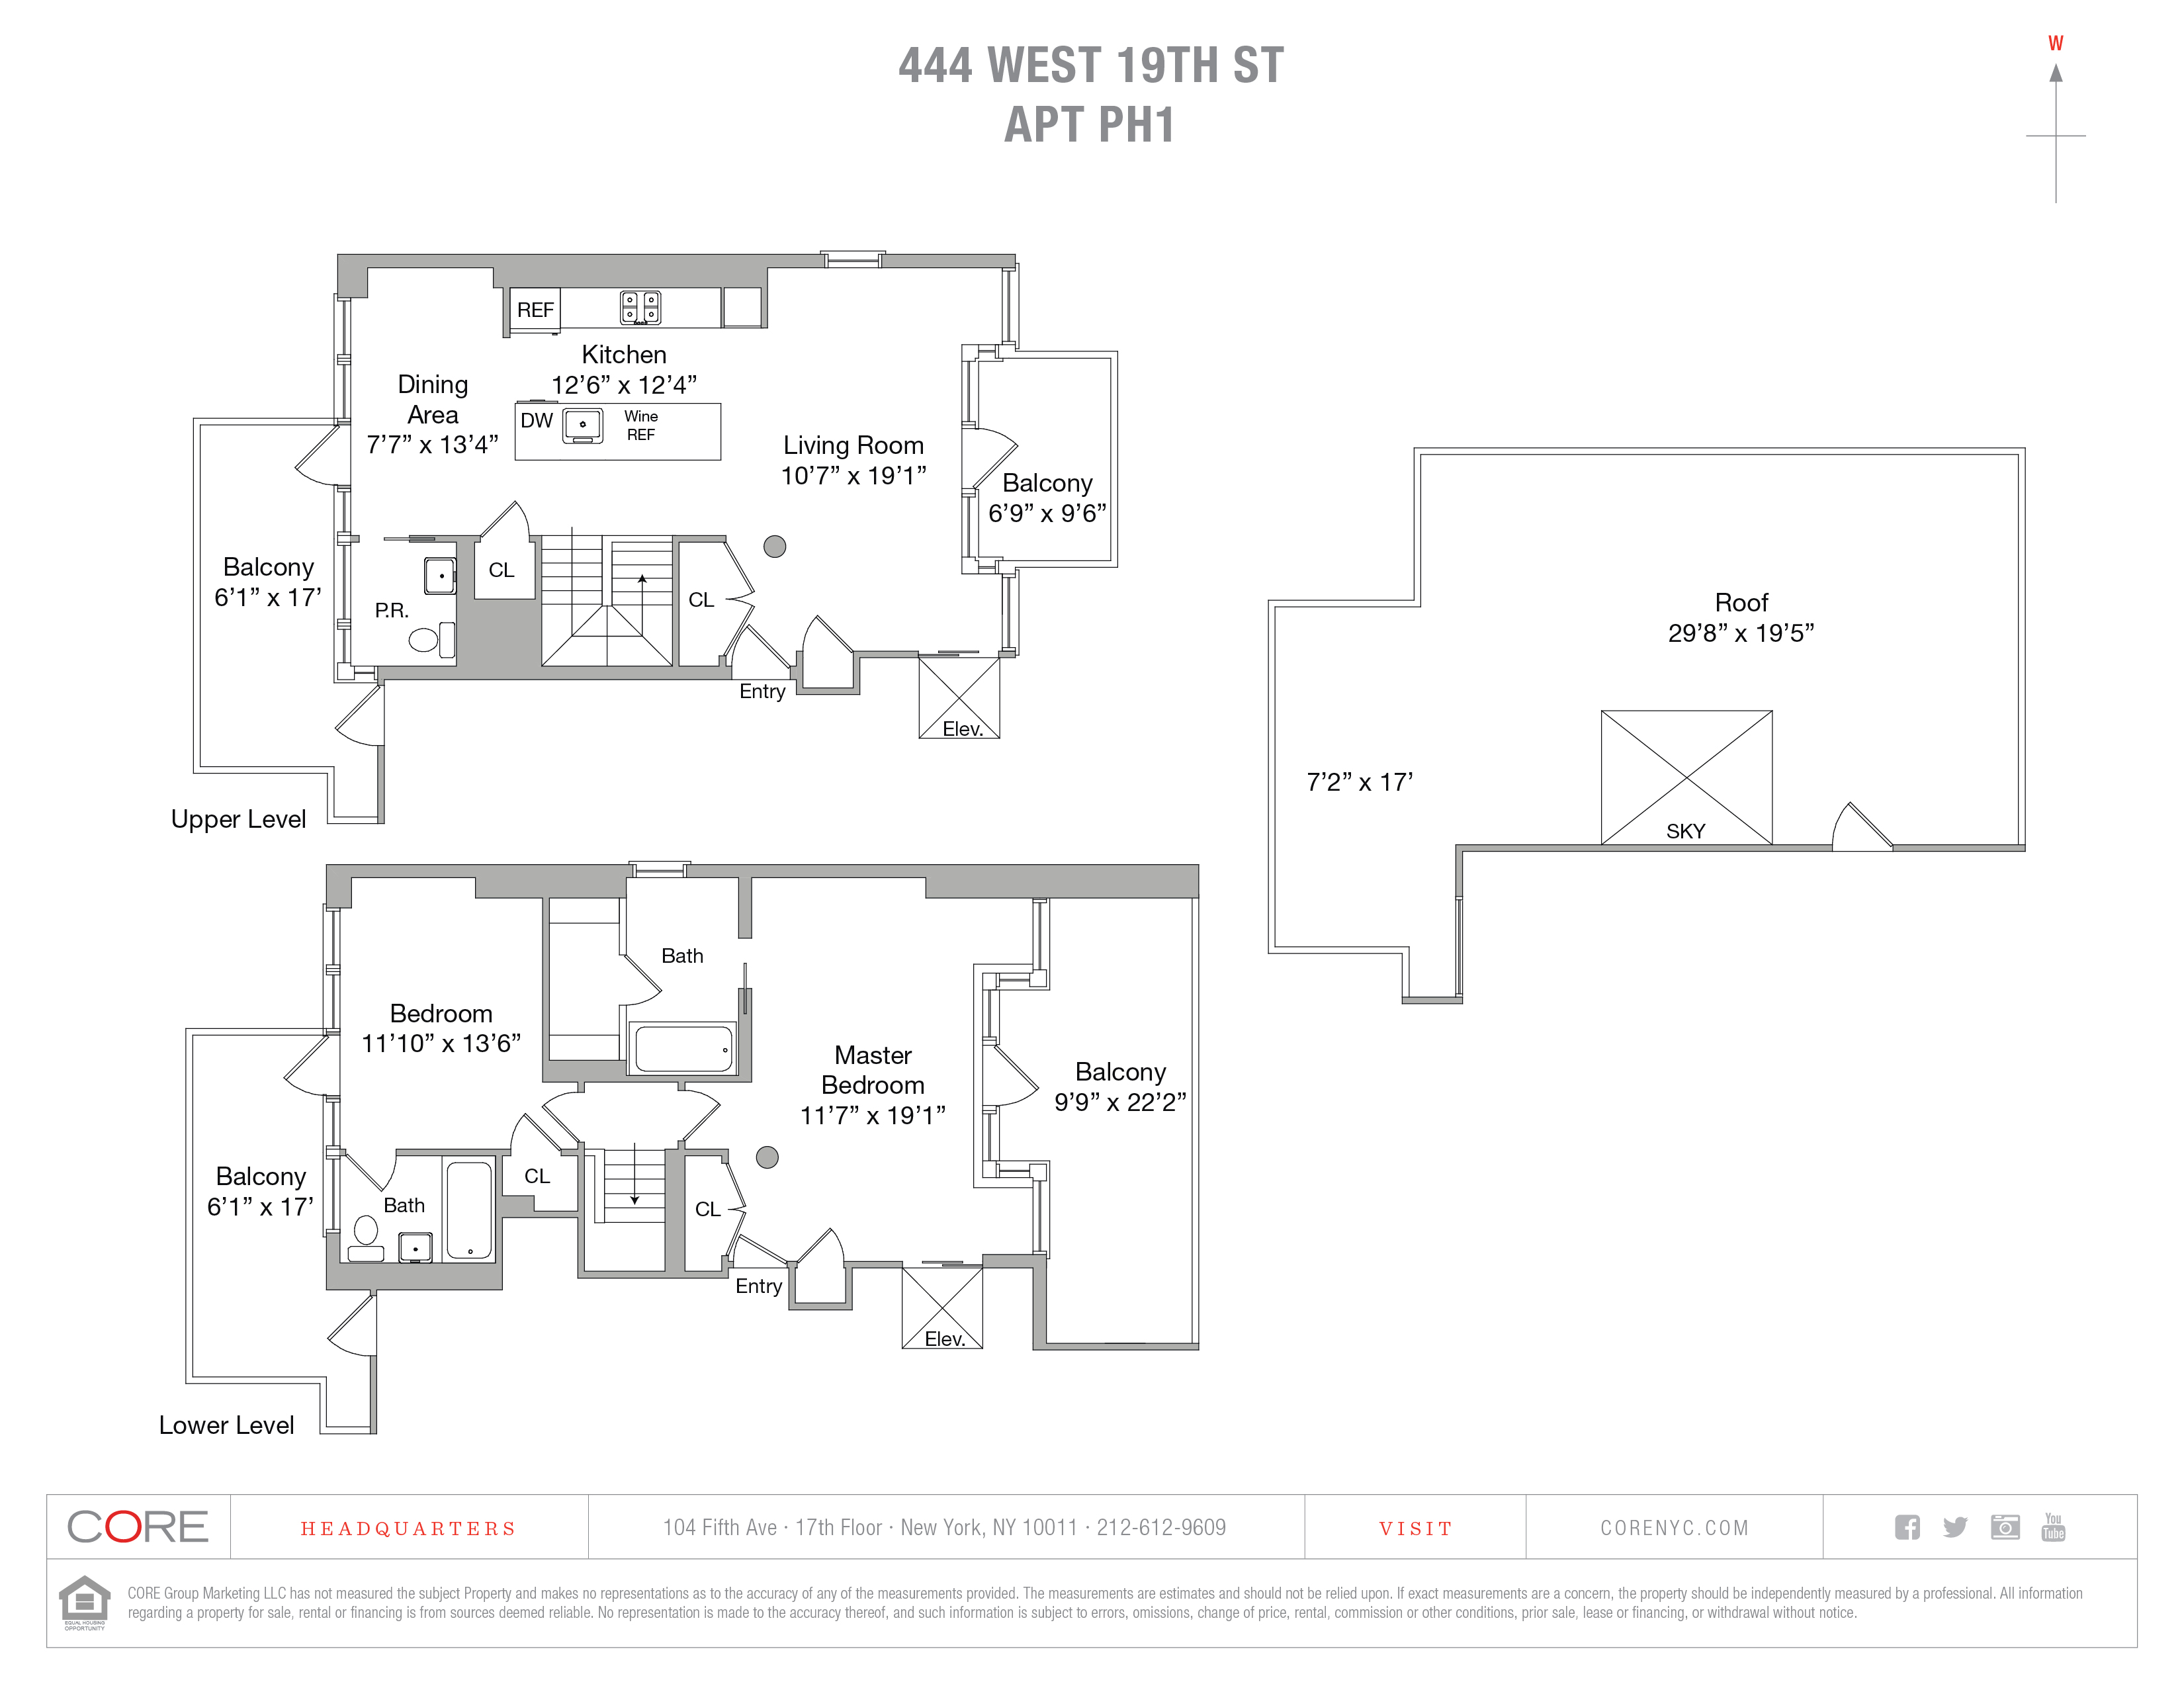 444 West 19th St. Penthouse 1, New York, NY 10011